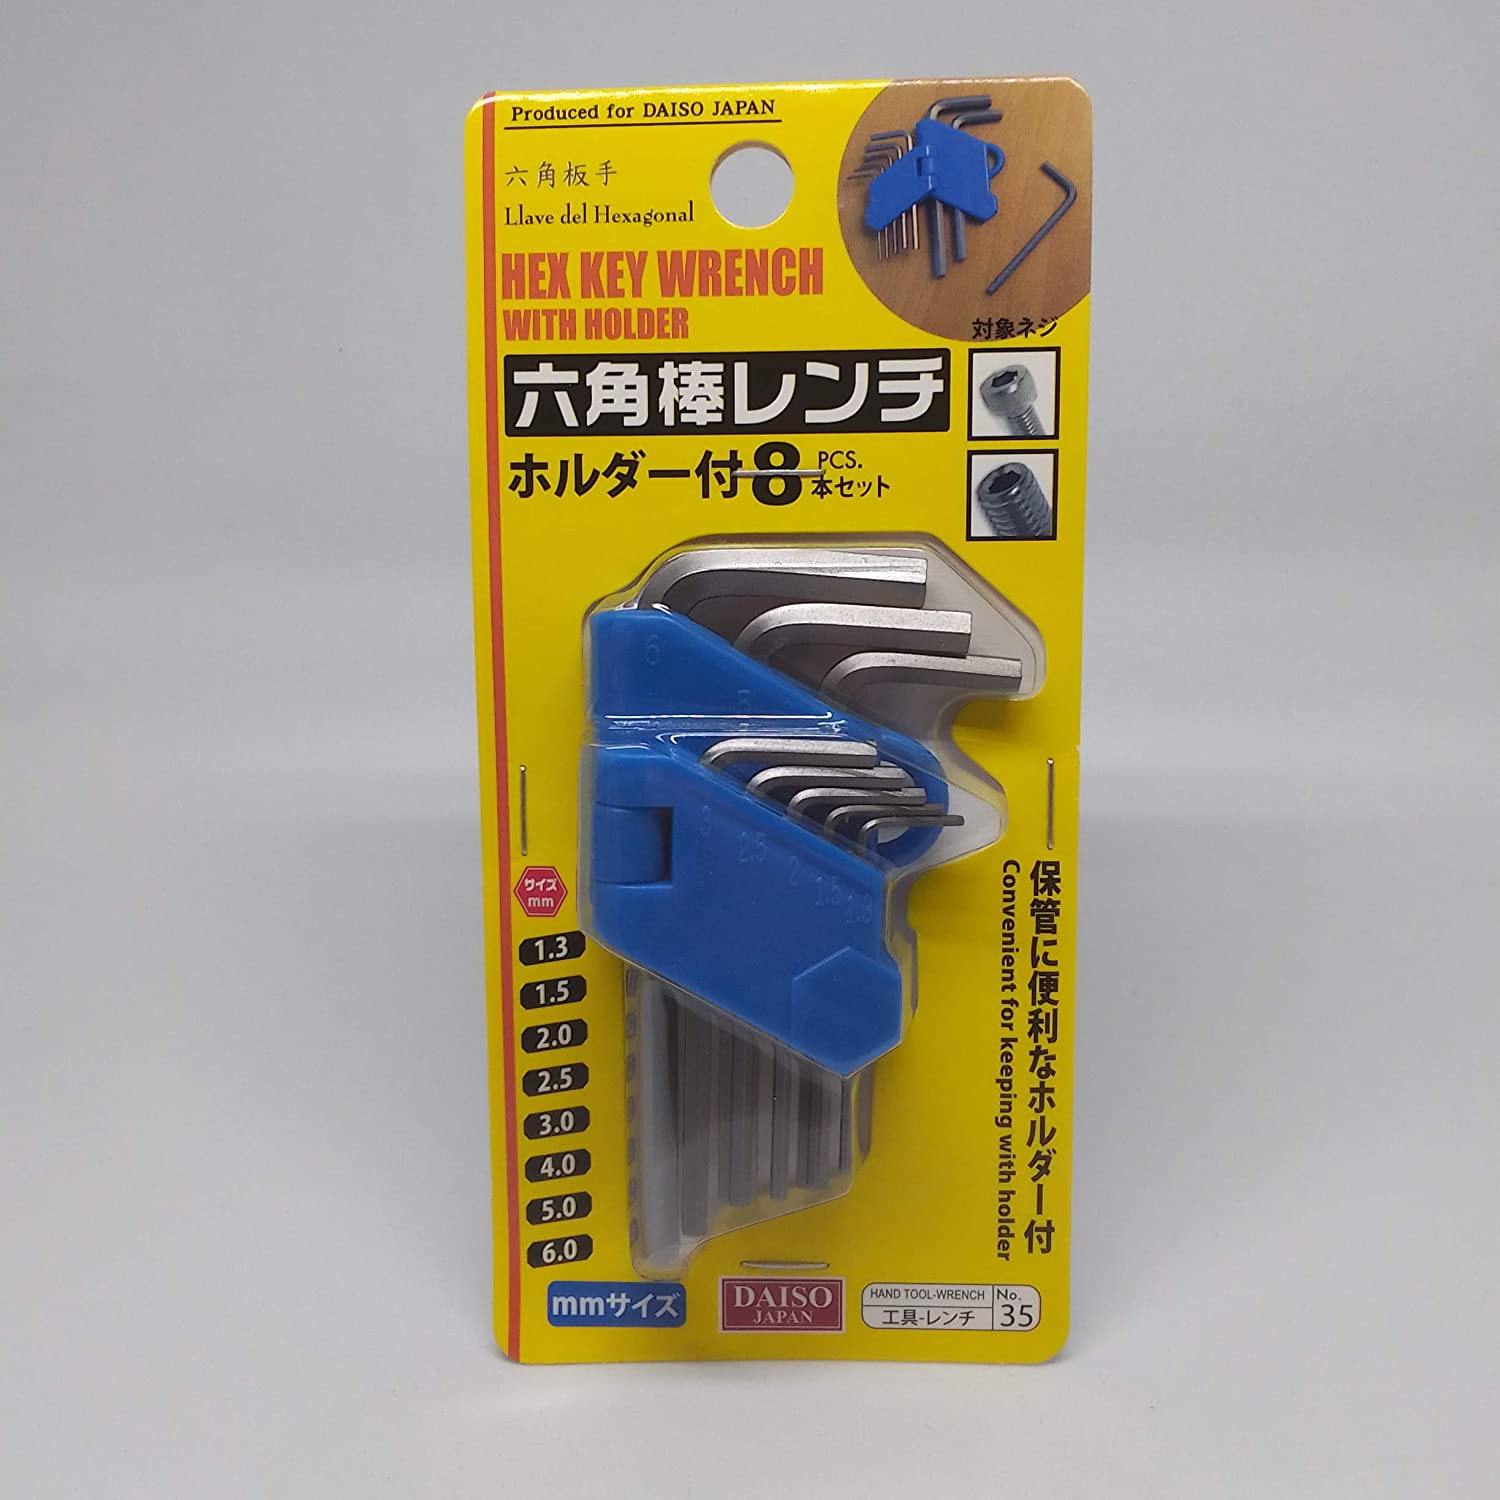 with Holder Hex Key Wrench Set of 8pcs 1.3, 1.5, 2.0, 2.5, 3.0, 4.0, 5.0, 6.0mm